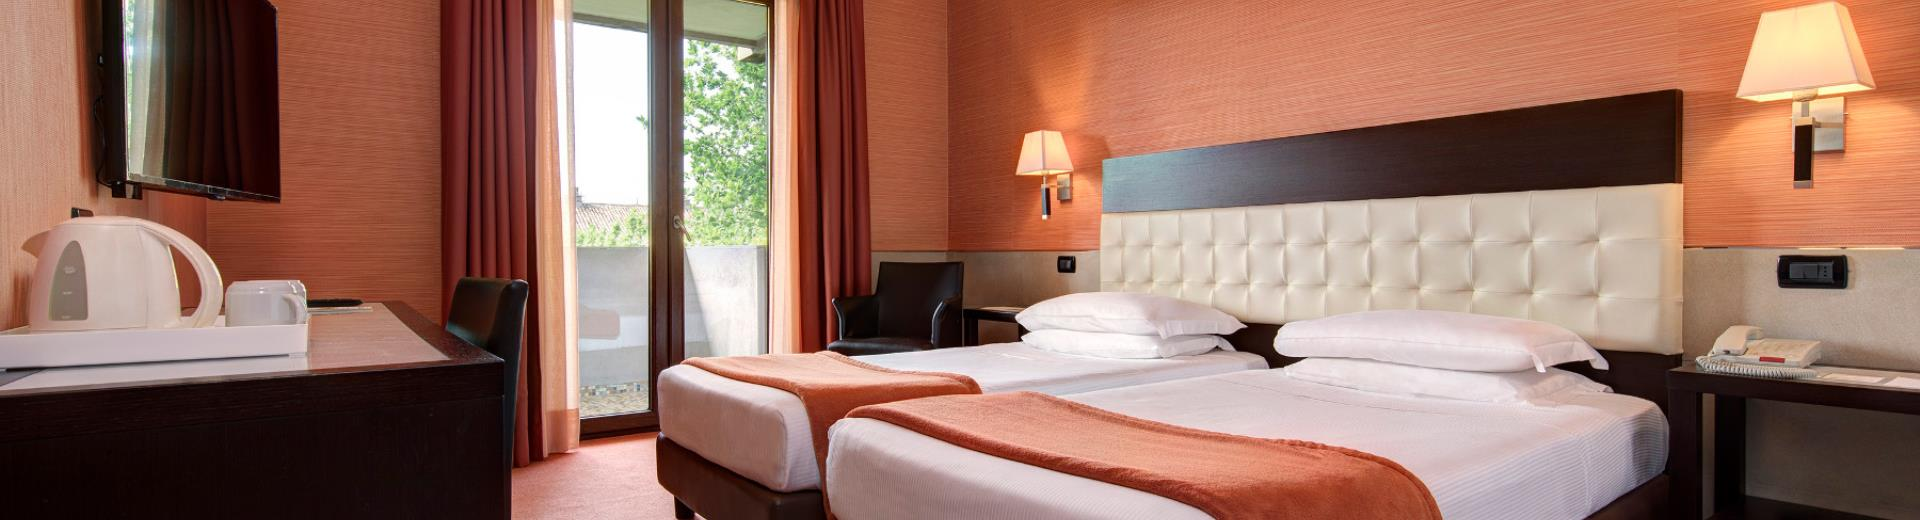 Twin Room -  Best Western Gorizia Palace Hotel